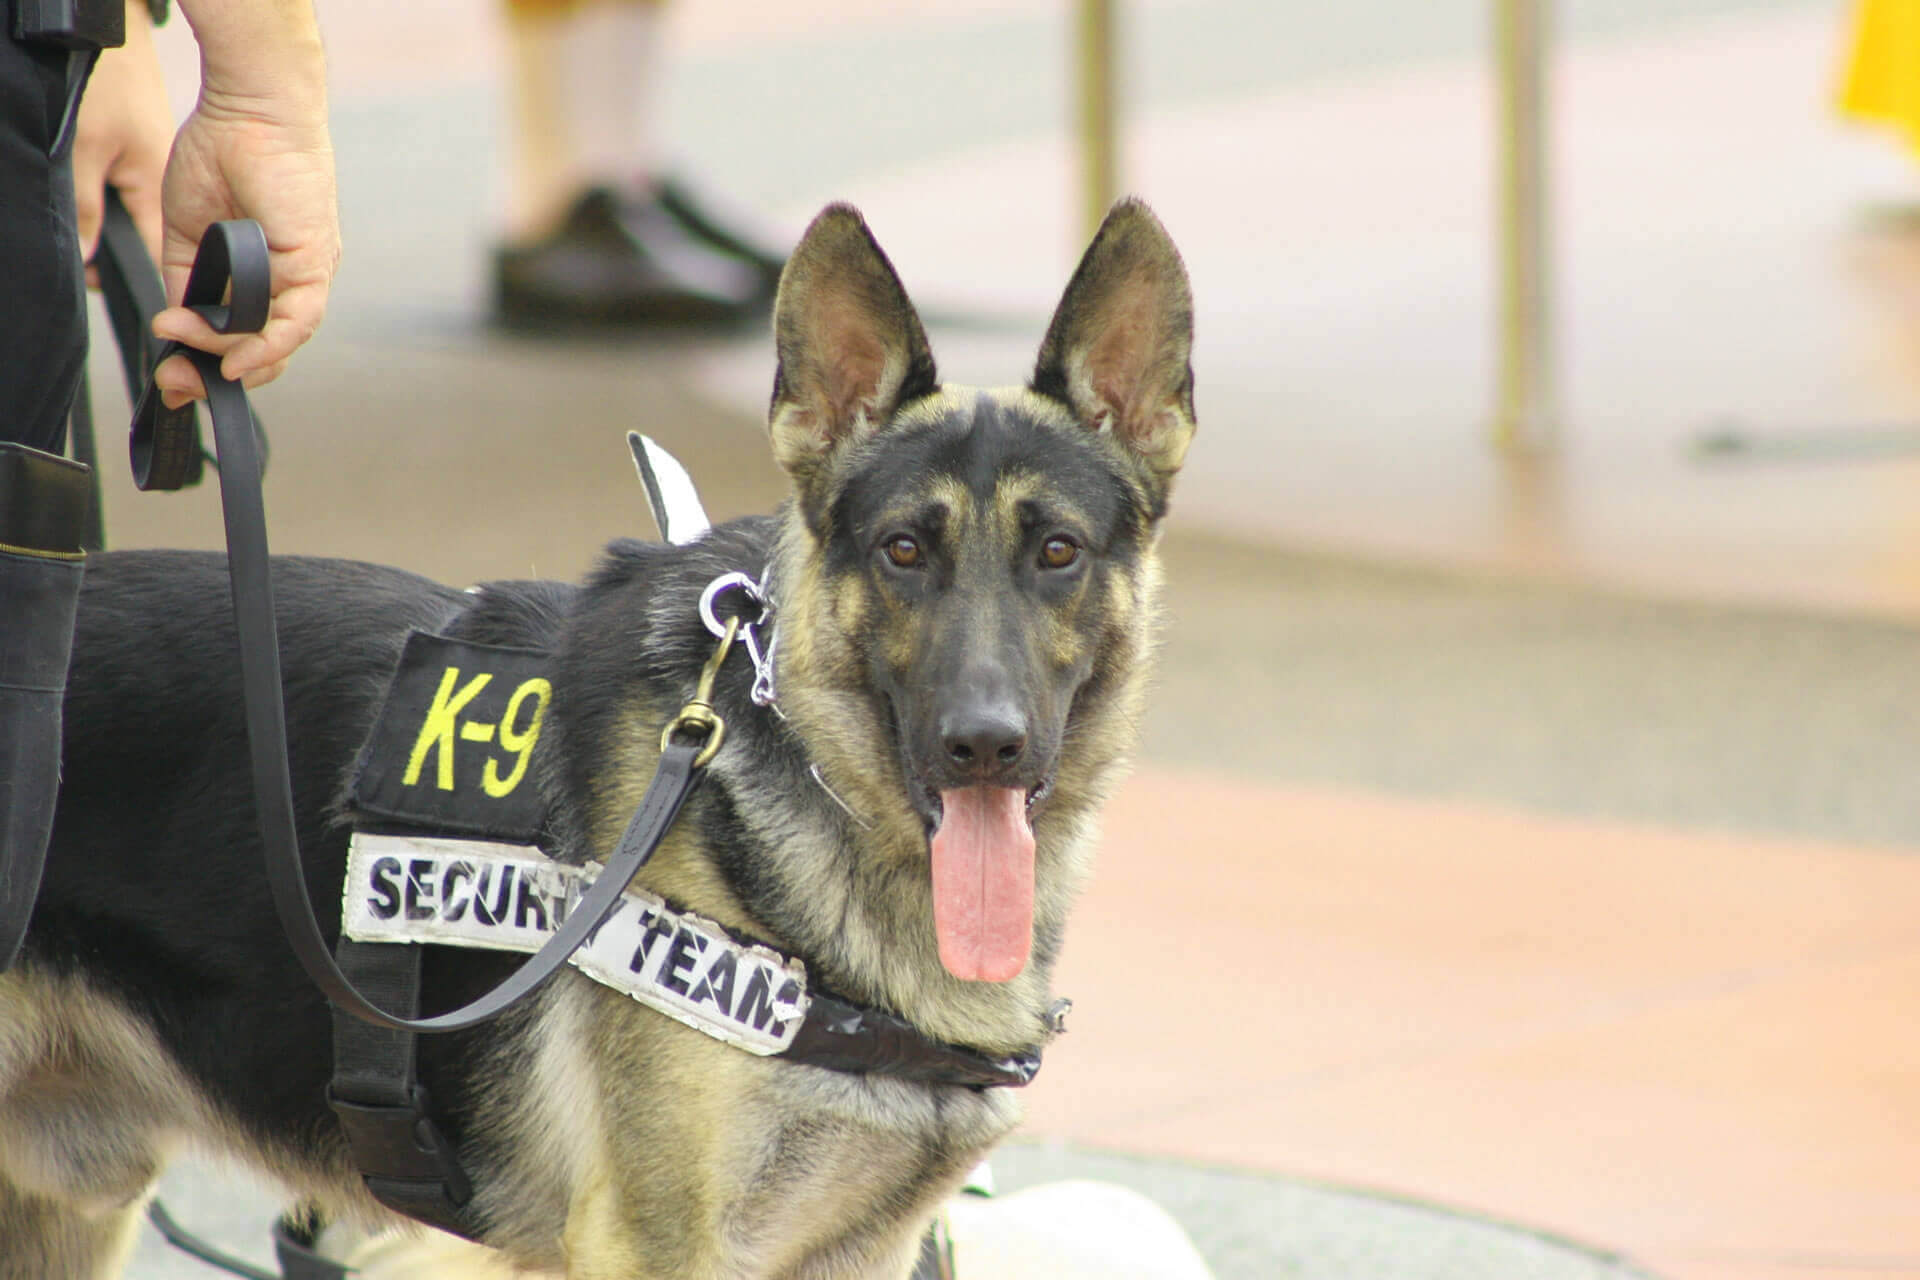 How To Train Police Dogs As A Career